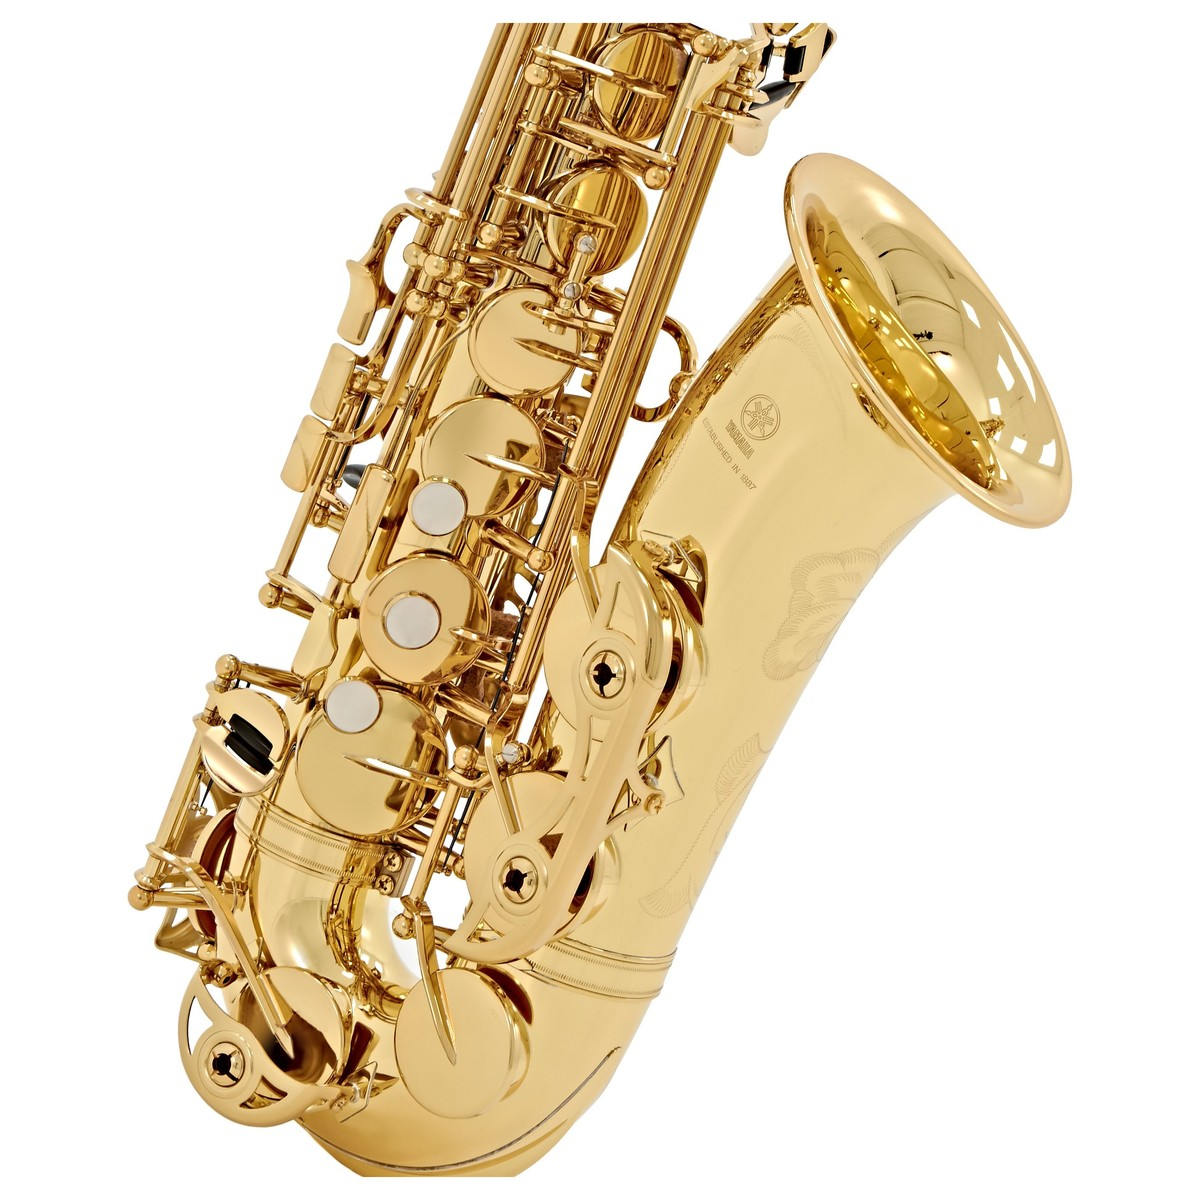 yamaha yas62 professional alto saxophone gold box opened gear4music. Black Bedroom Furniture Sets. Home Design Ideas